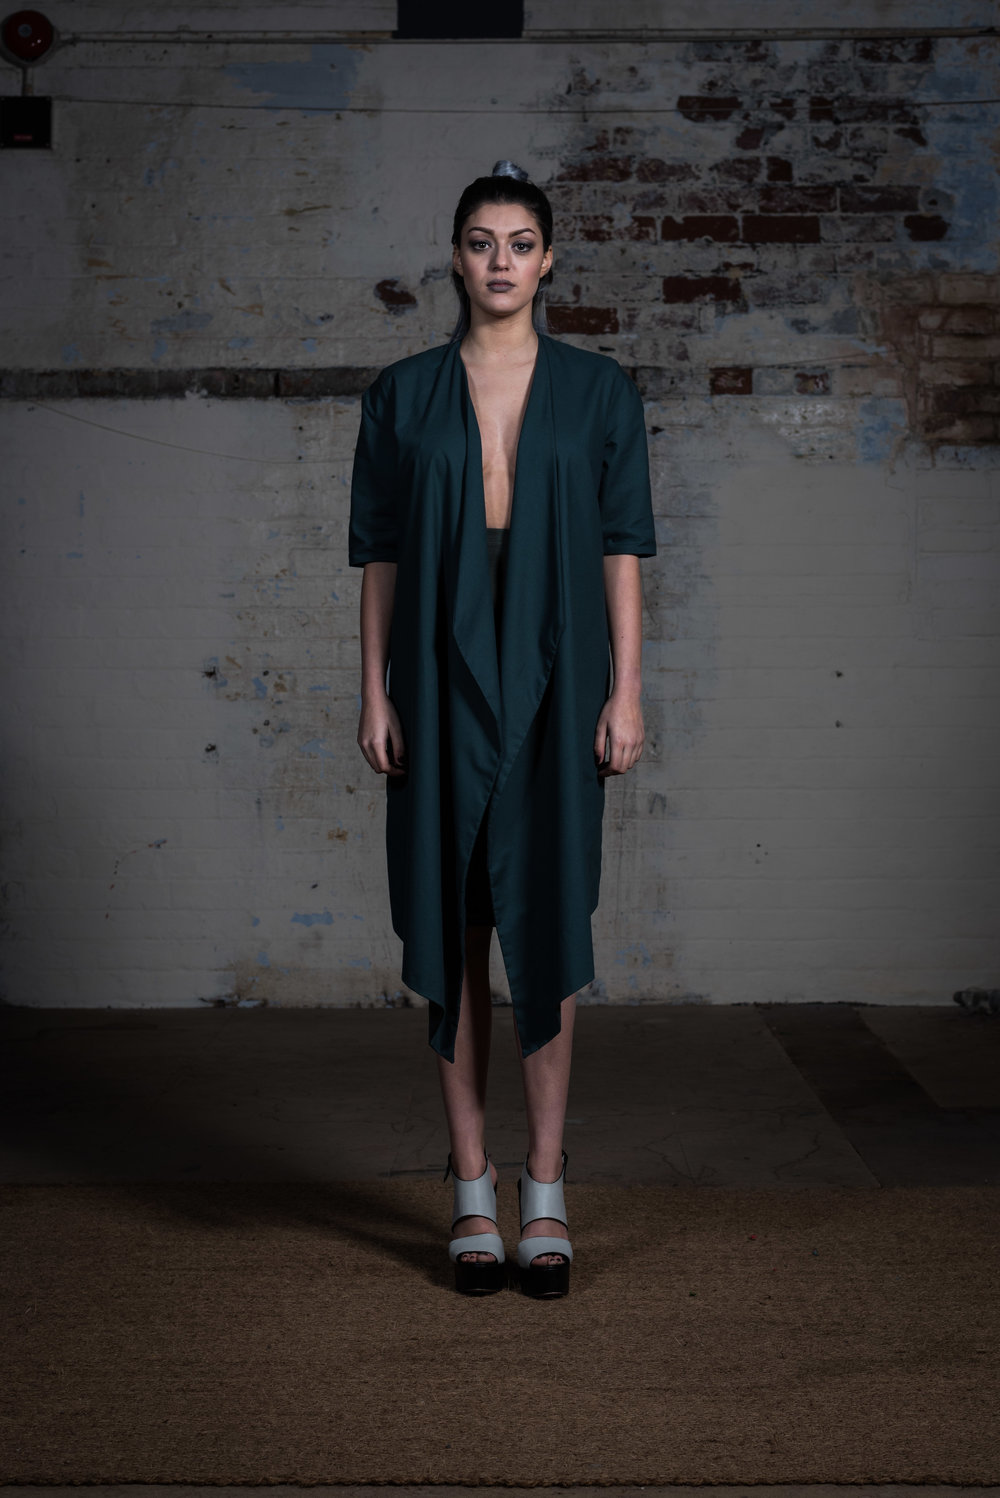 zaramia-ava-zaramiaava-leeds-fashion-designer-ethical-sustainable-teal-mai-jacket-dress-versatile-drape-skirt-grey-yuko-cowl-dress-styling-location-womenswear-models-photoshoot-5